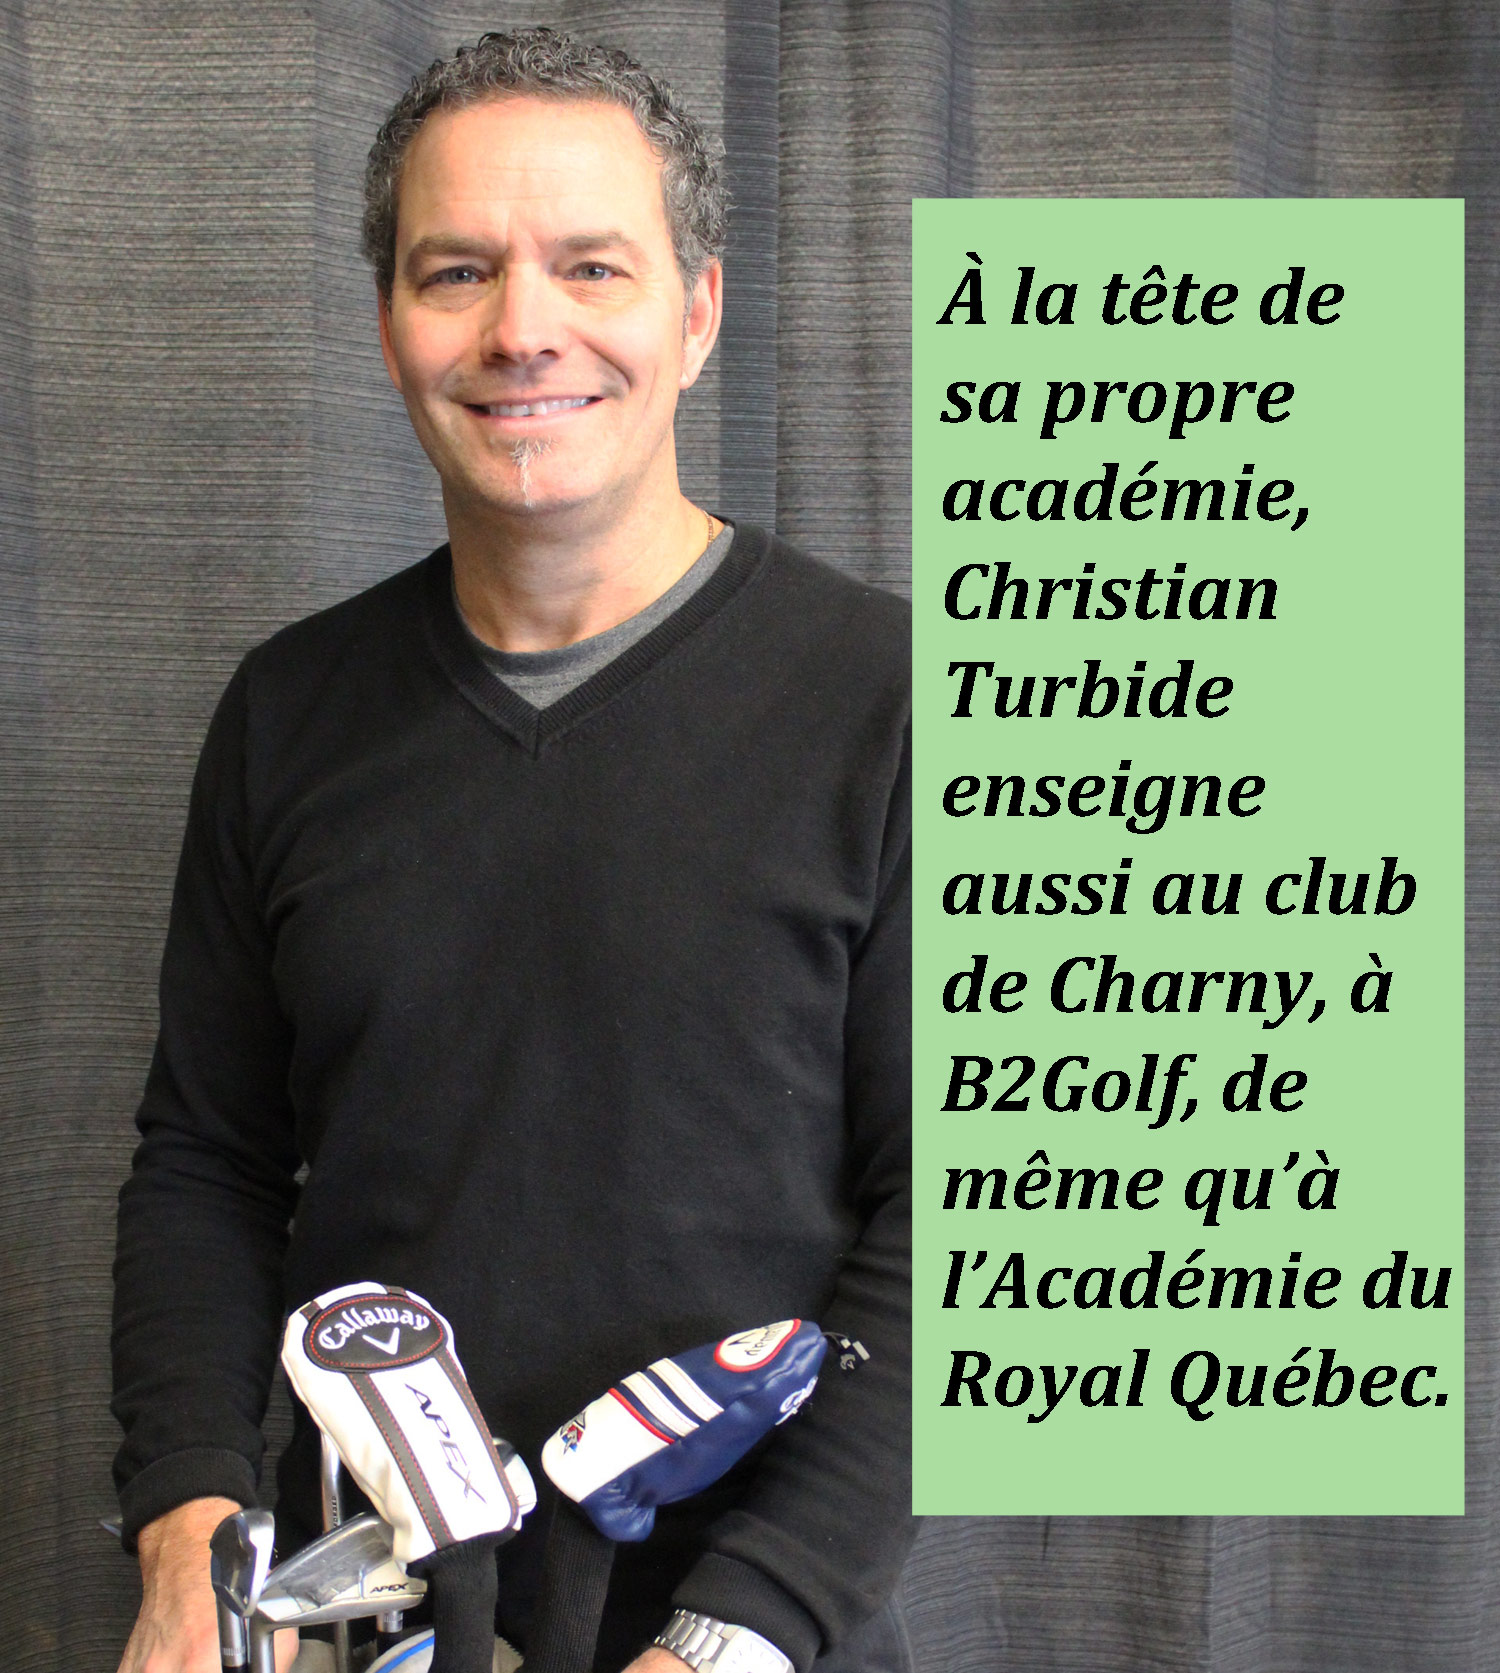 la pointe christian personals Christian lapointe is on facebook join facebook to connect with christian lapointe and others you may know facebook gives people the power to share and.